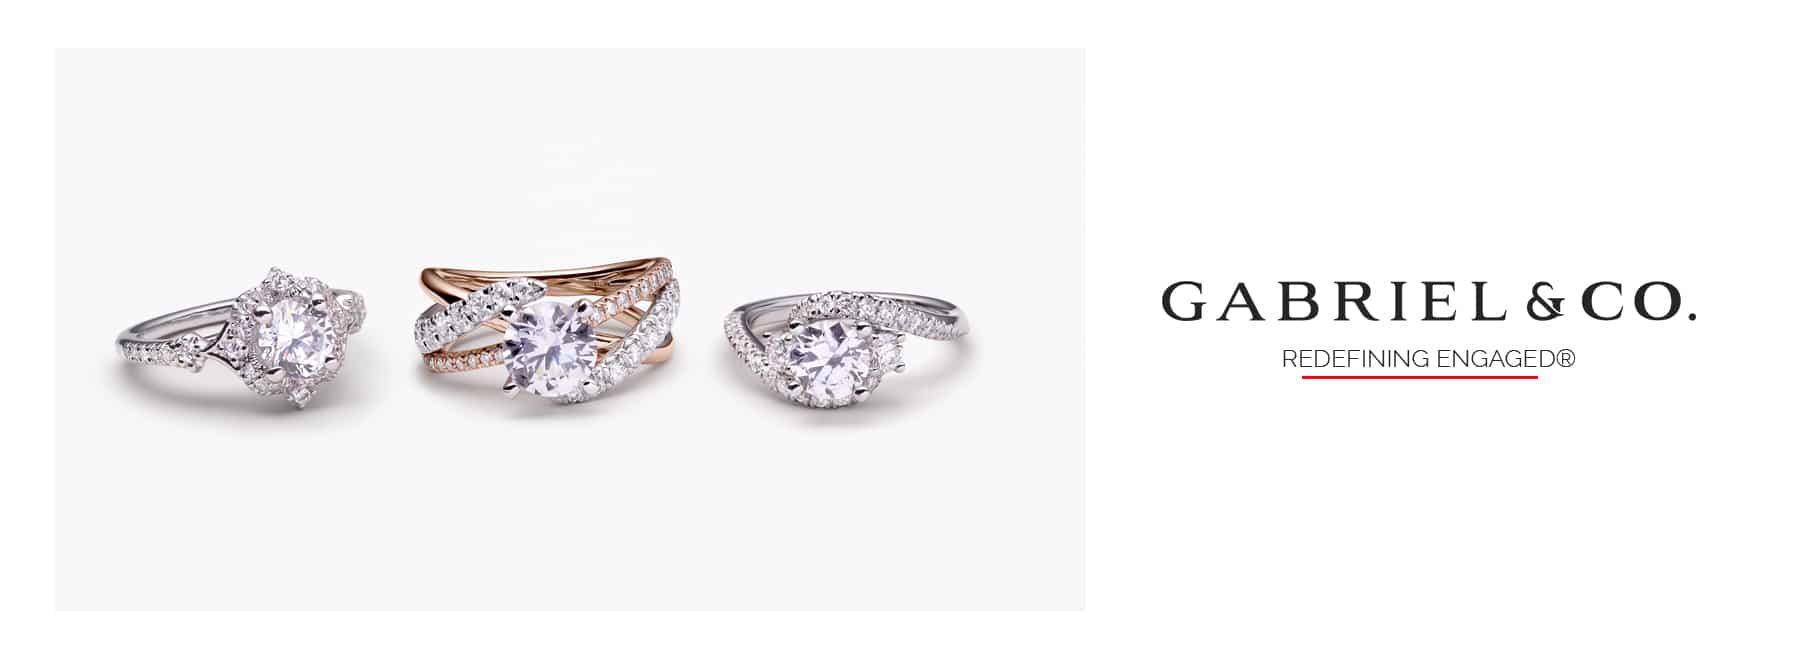 engagement rings from gabriel and co.